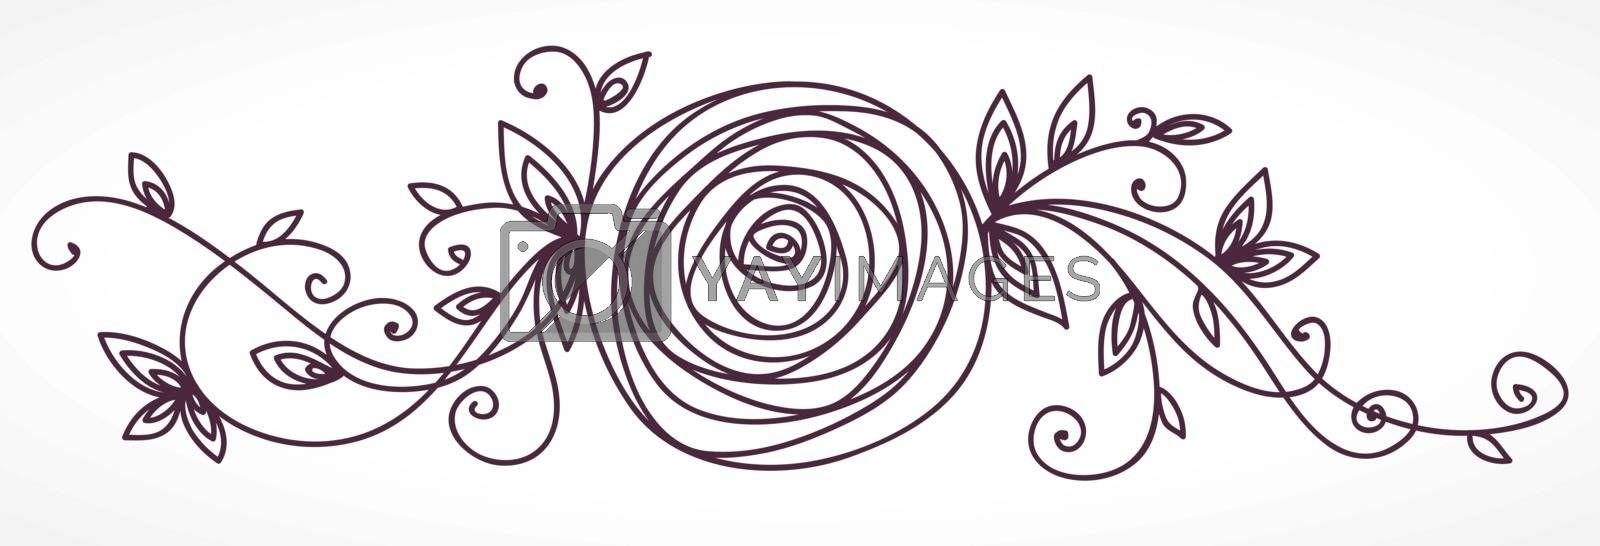 Rose. Stylized flower hand drawing. Outline icon symbol. Present for wedding, birthday invitation card